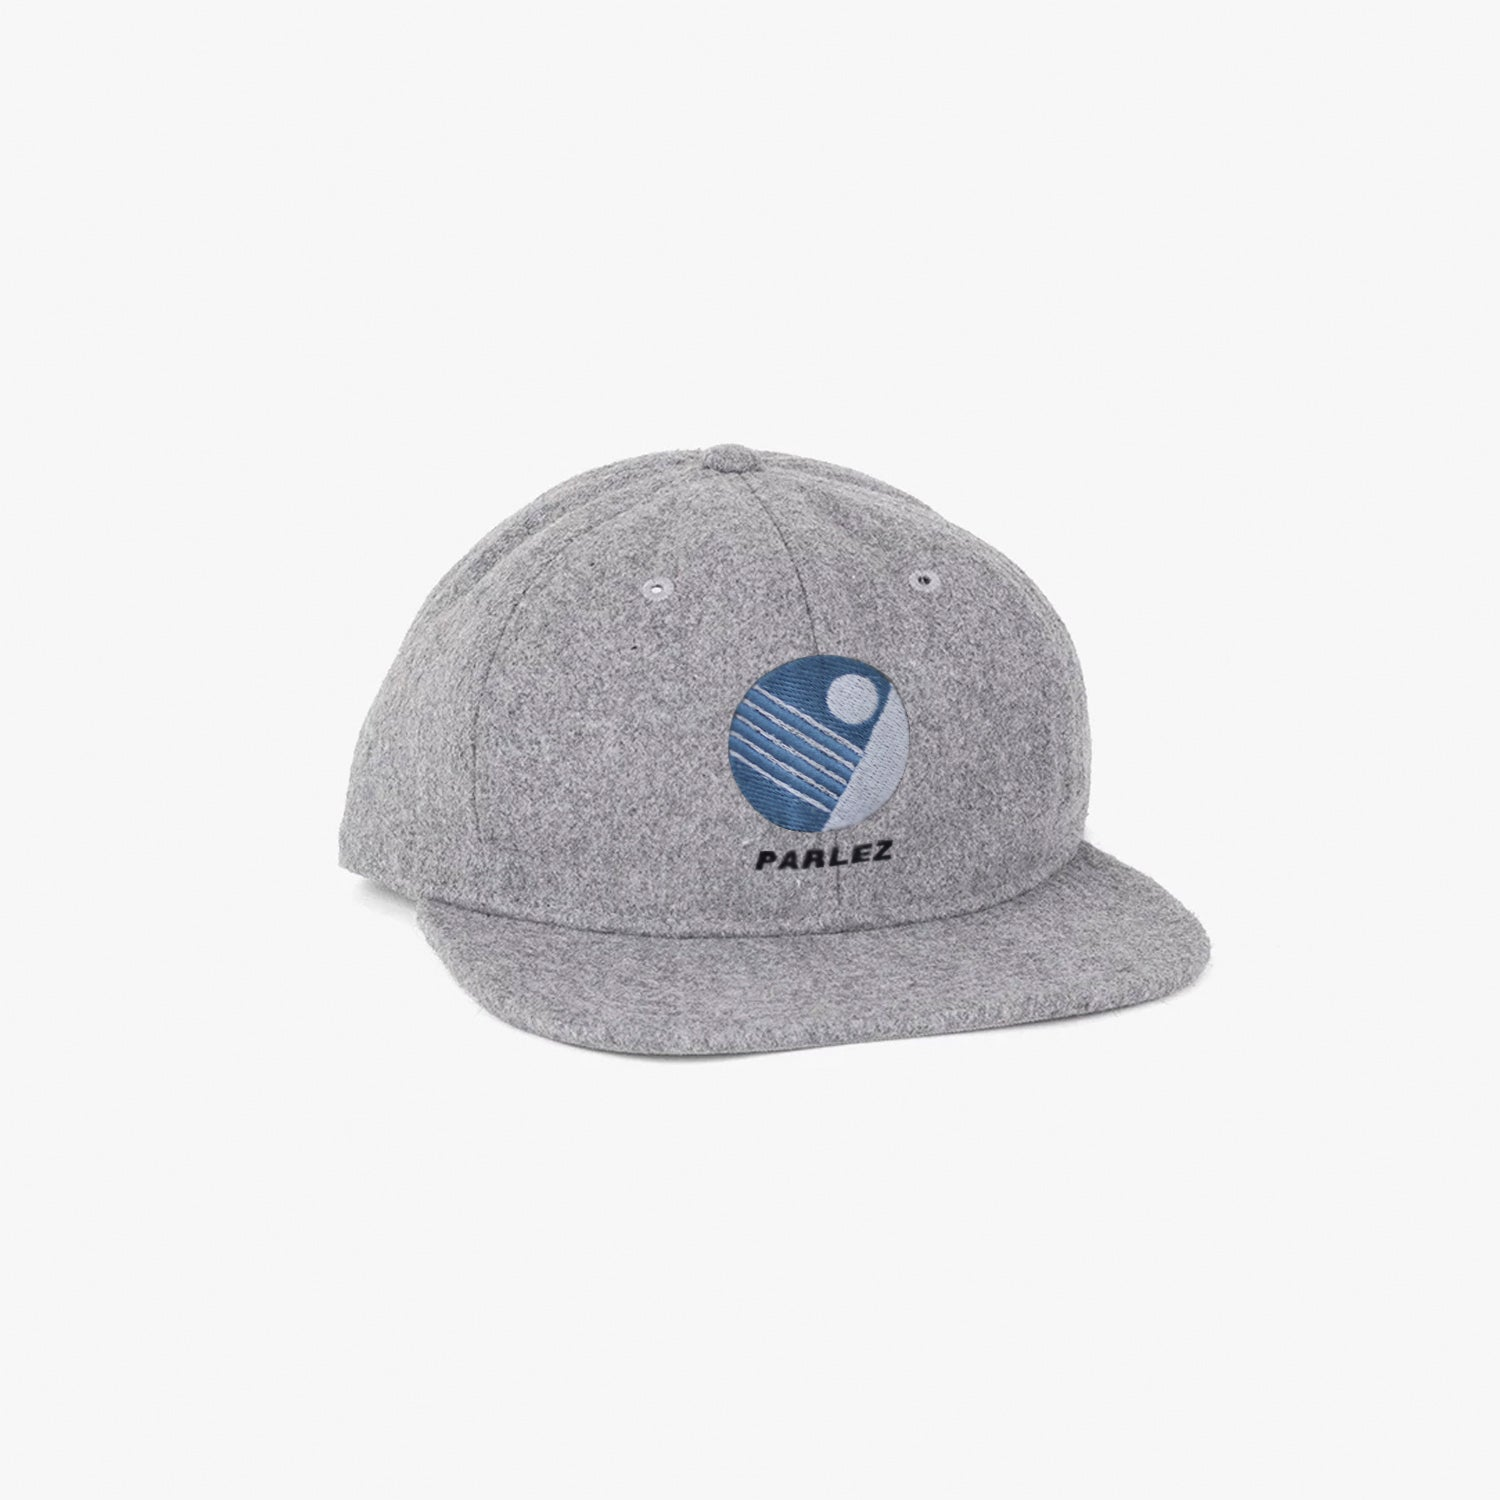 Parlez x Jingo Wool 6 Panel - Heather